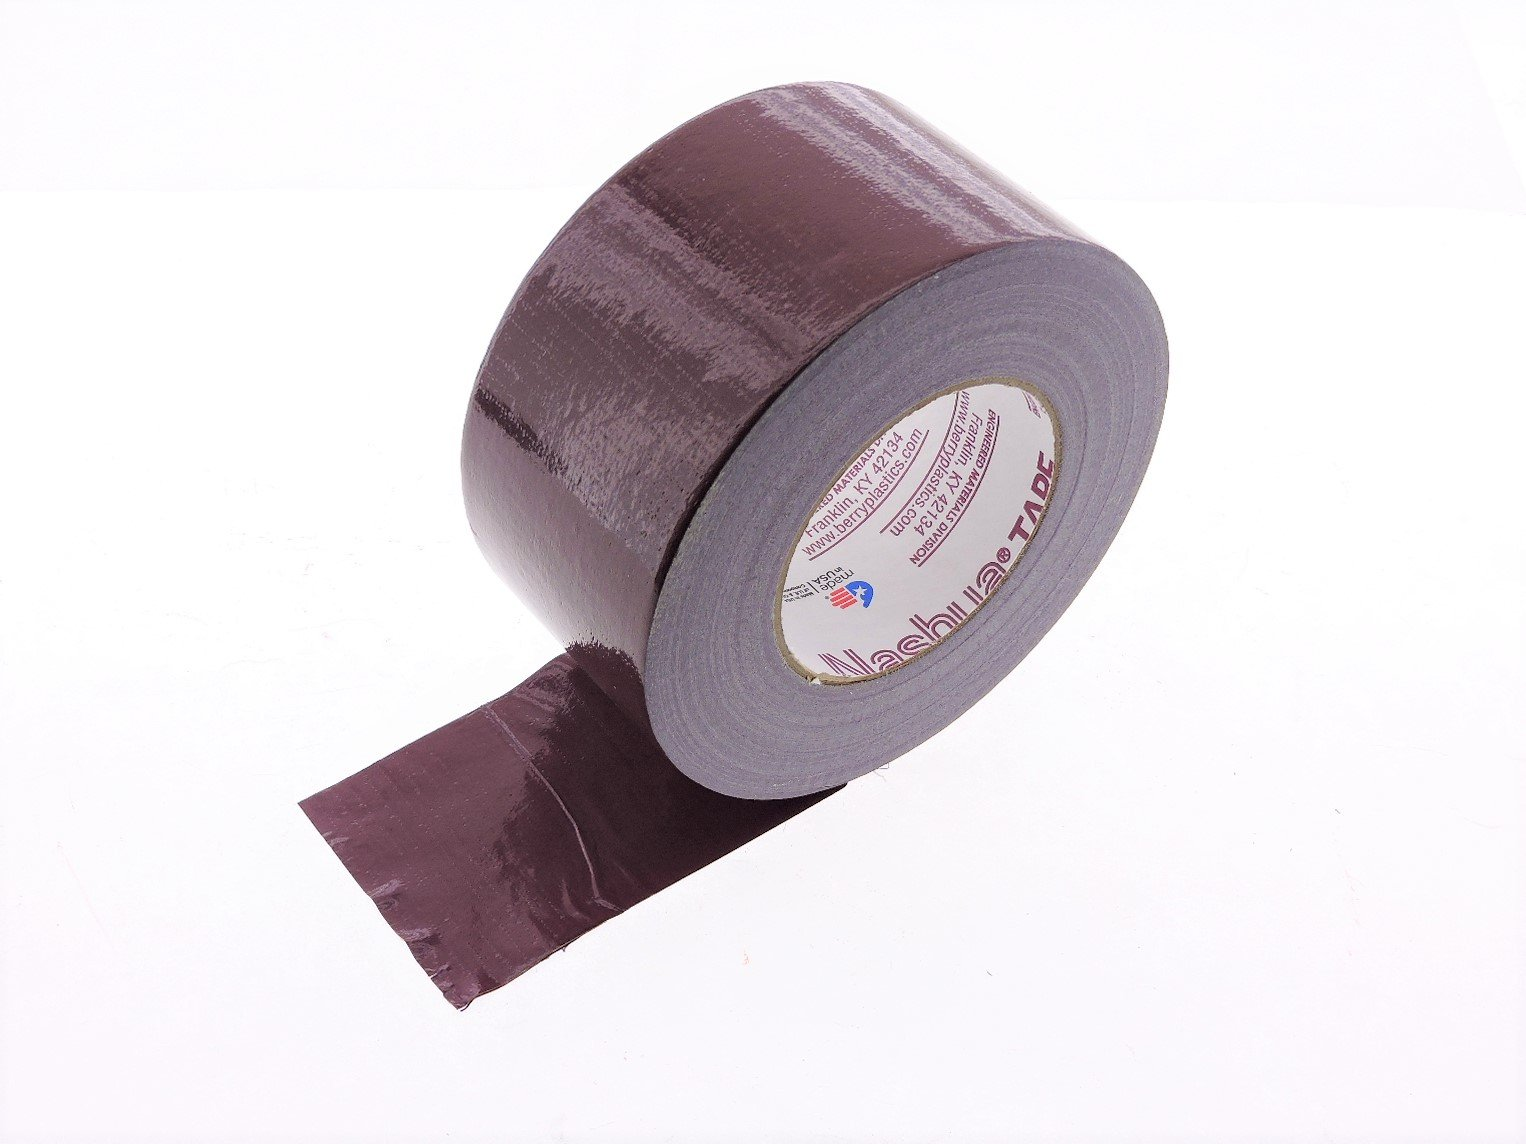 3'' in Maroon Burgundy Duct Tape Nashua 2280 Heavy 9 mil Cloth Reinforced PE Back Duct Tape Water UV Resistant Hand Tearable 60yd USA Made 70 oz inch adhesion 20% elongation 24 lb in tensile strength